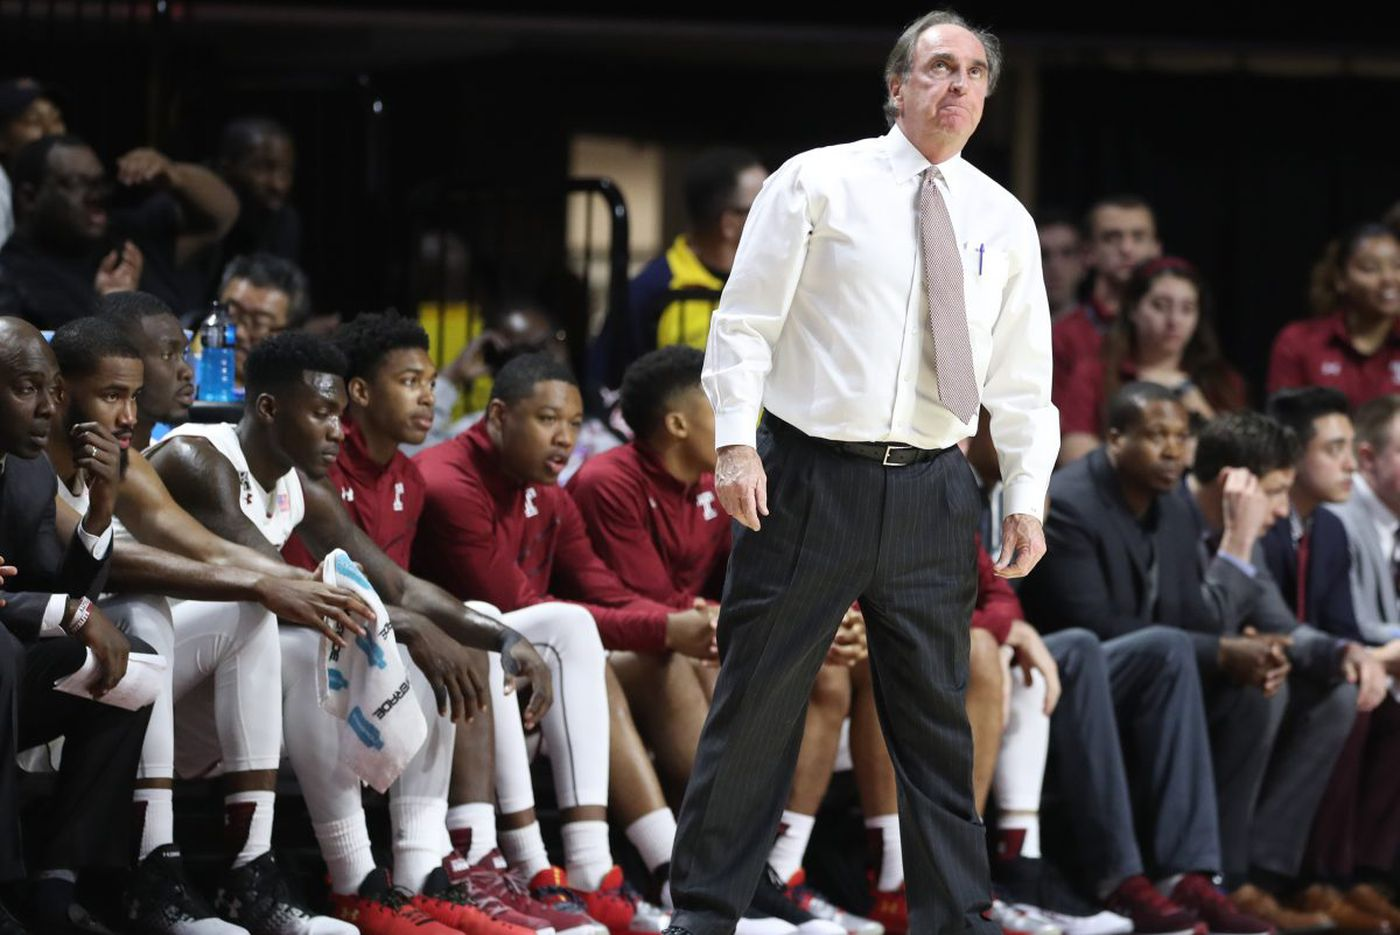 Temple's Fran Dunphy to step down after 2018-19 season; Aaron McKie will succeed him